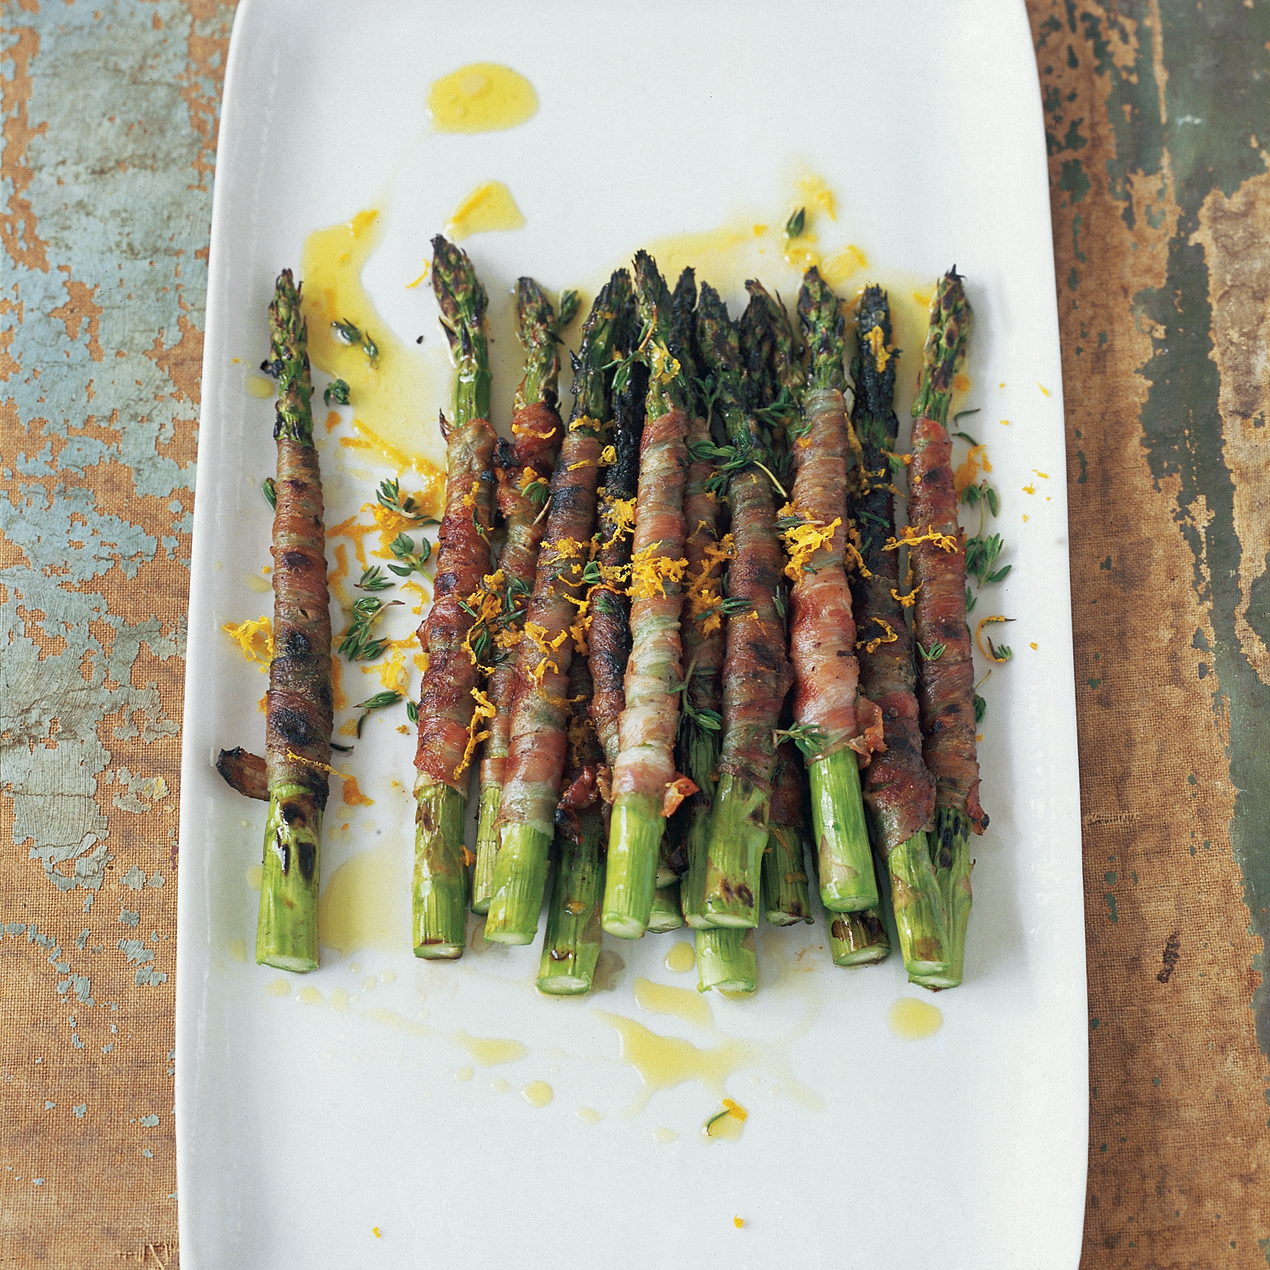 Pancetta Wrapped Asparagus - Once Upon a Chef |Pancetta Wrapped Halibut